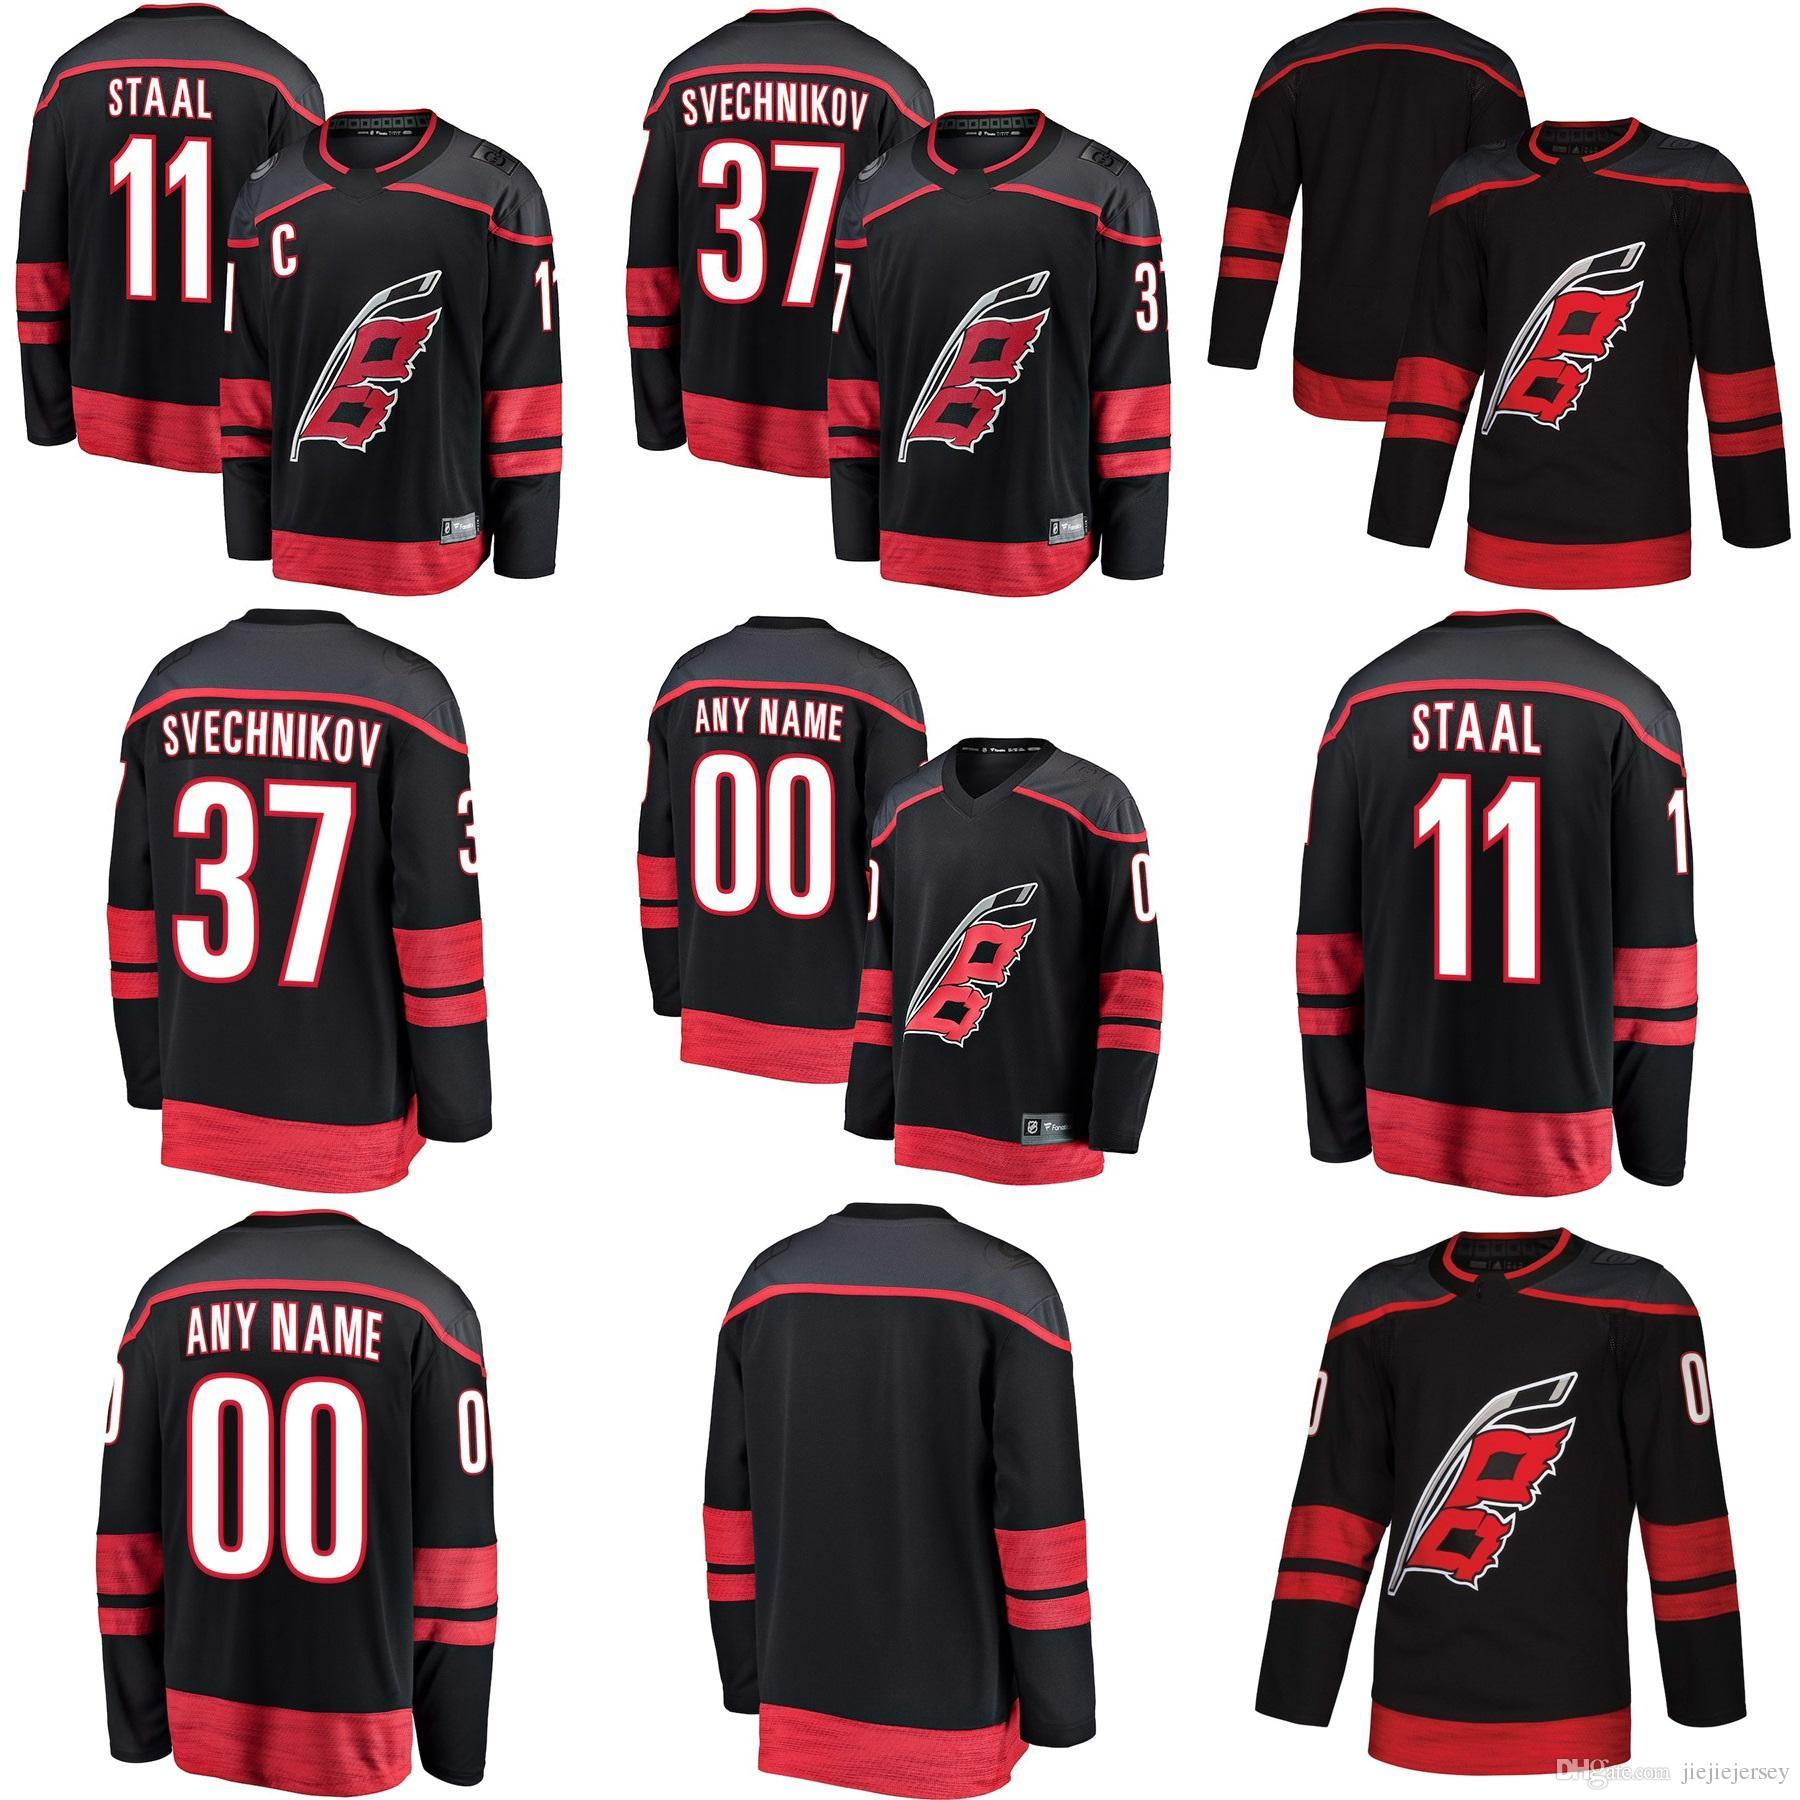 ef1eee02a Cheap Custom Mens Carolina Hurricanes 11 Staal 20 Sebastian Aho 37 ...